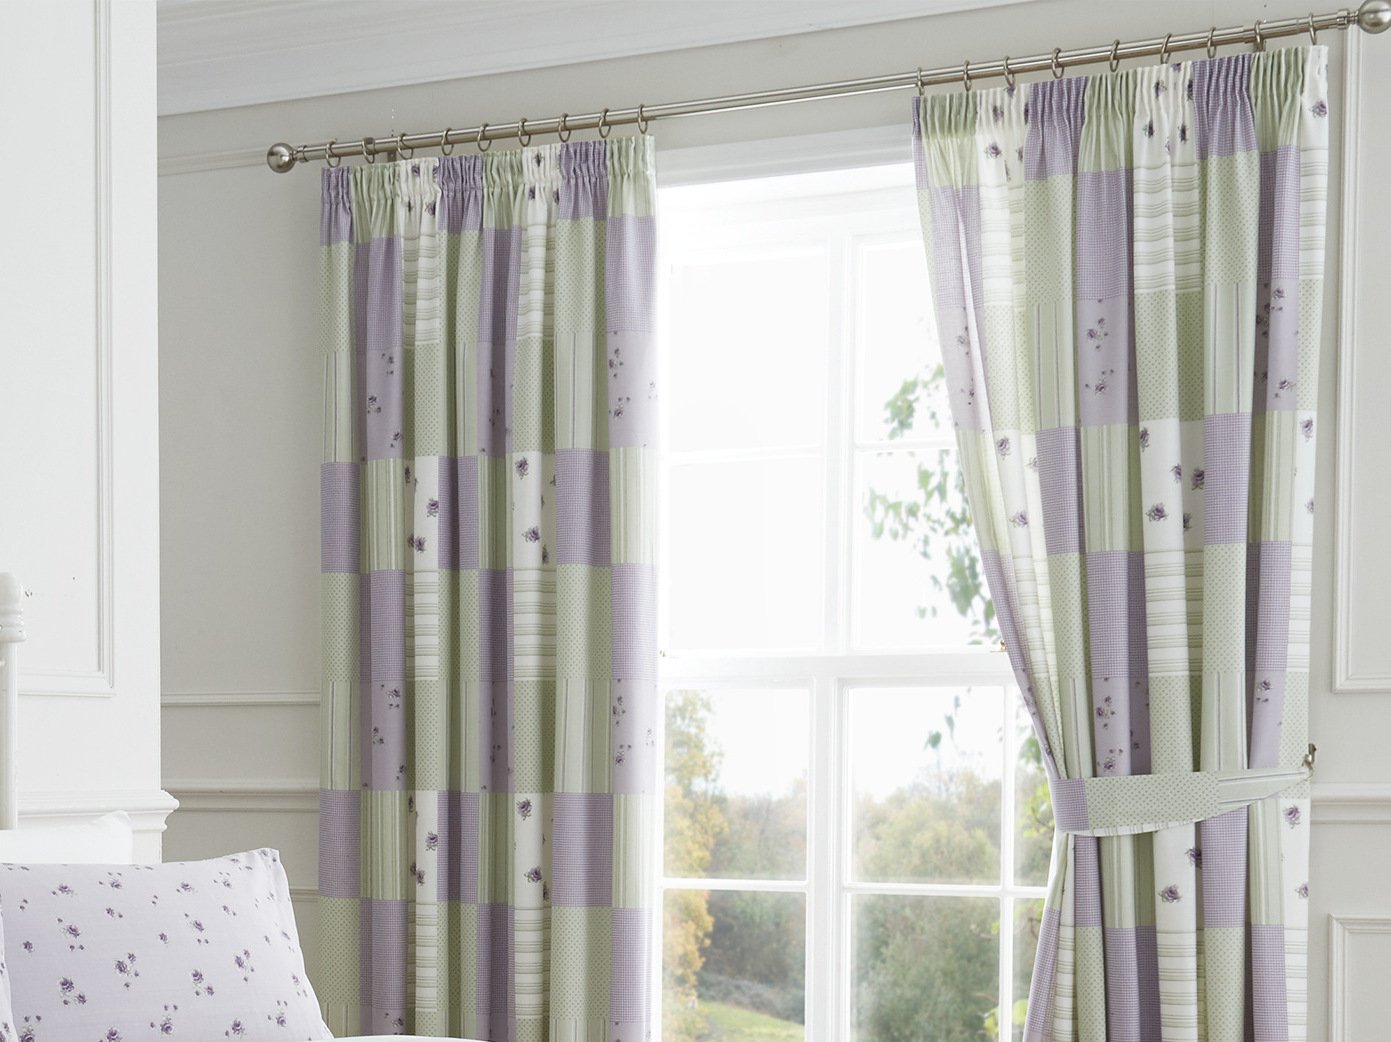 Dreams U0027nu0027 Drapes 66 X 72 Inch Lined Patchwork Curtain, Lilac:  Amazon.co.uk: Kitchen U0026 Home